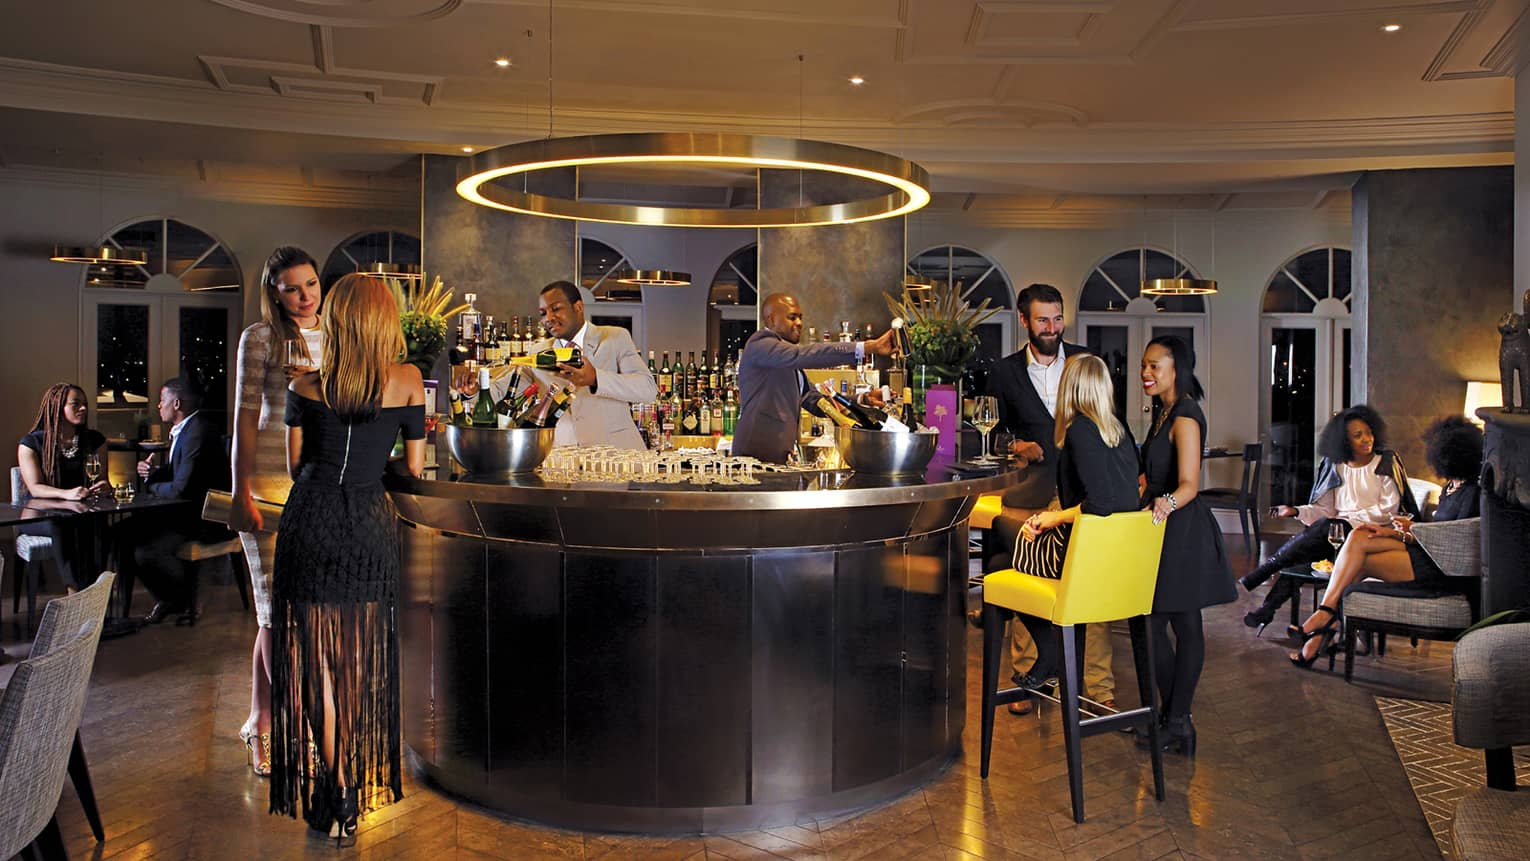 People in formal clothes socialize around small round bar with bartenders in Pre View restaurant